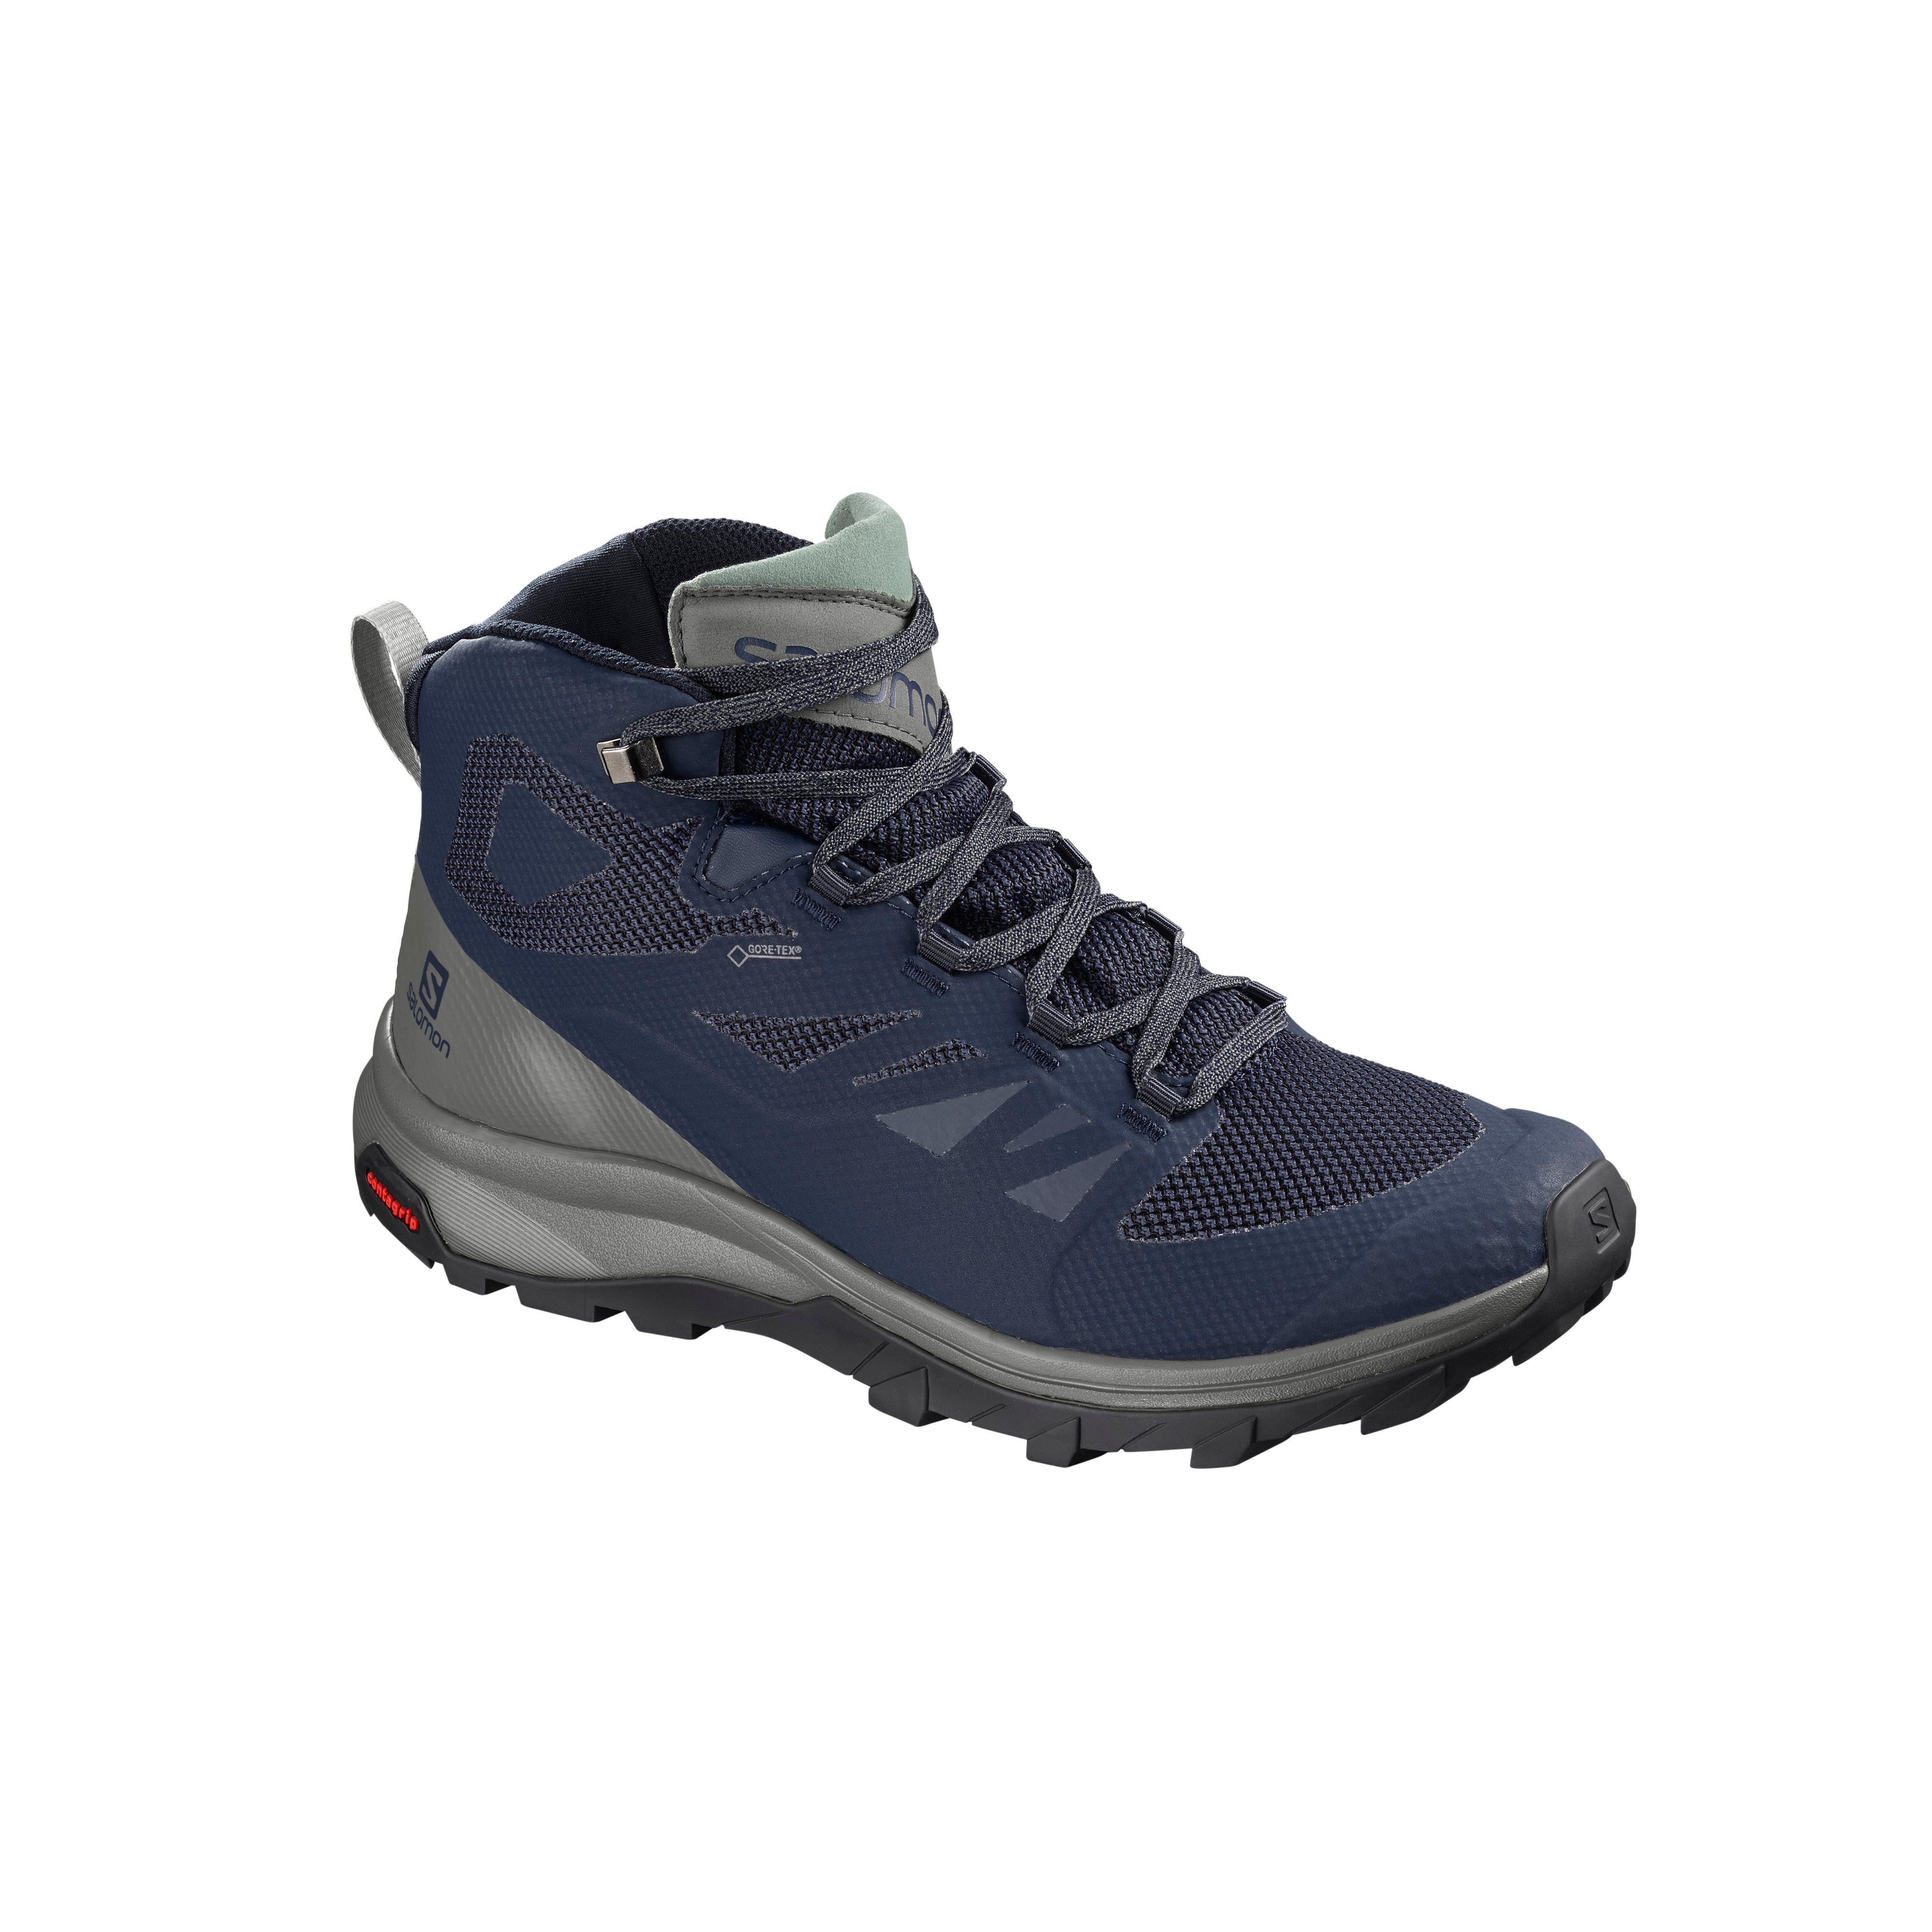 Intersport SALOMON OUTline Mid GTX tursko dame | Intersport